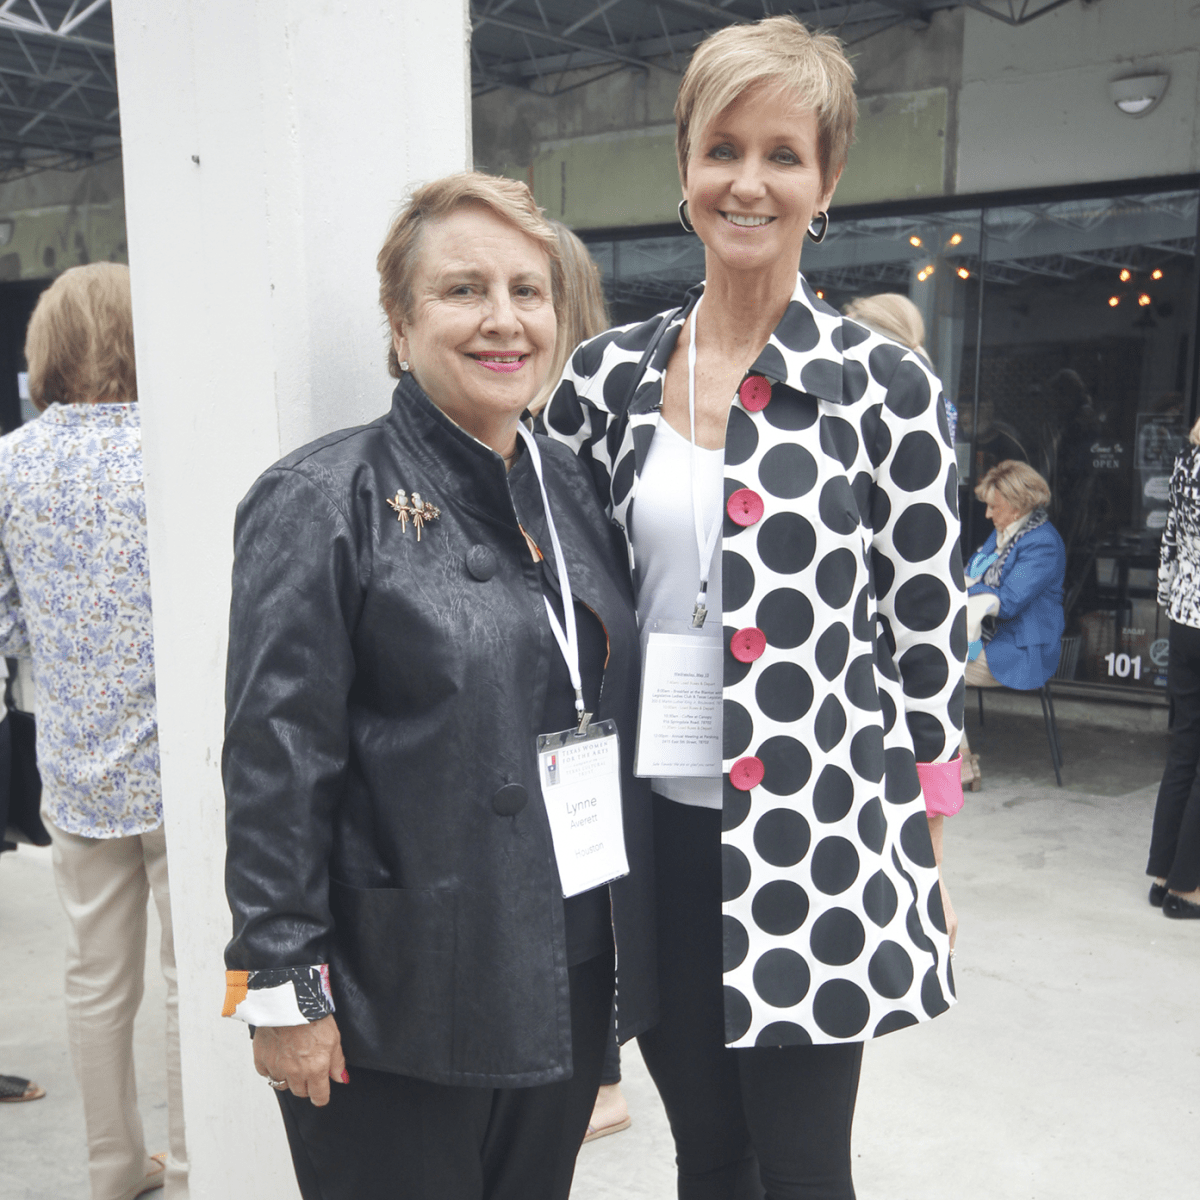 Texas Women for the Arts Meeting 2017 Lynne Averett Mona Knopp